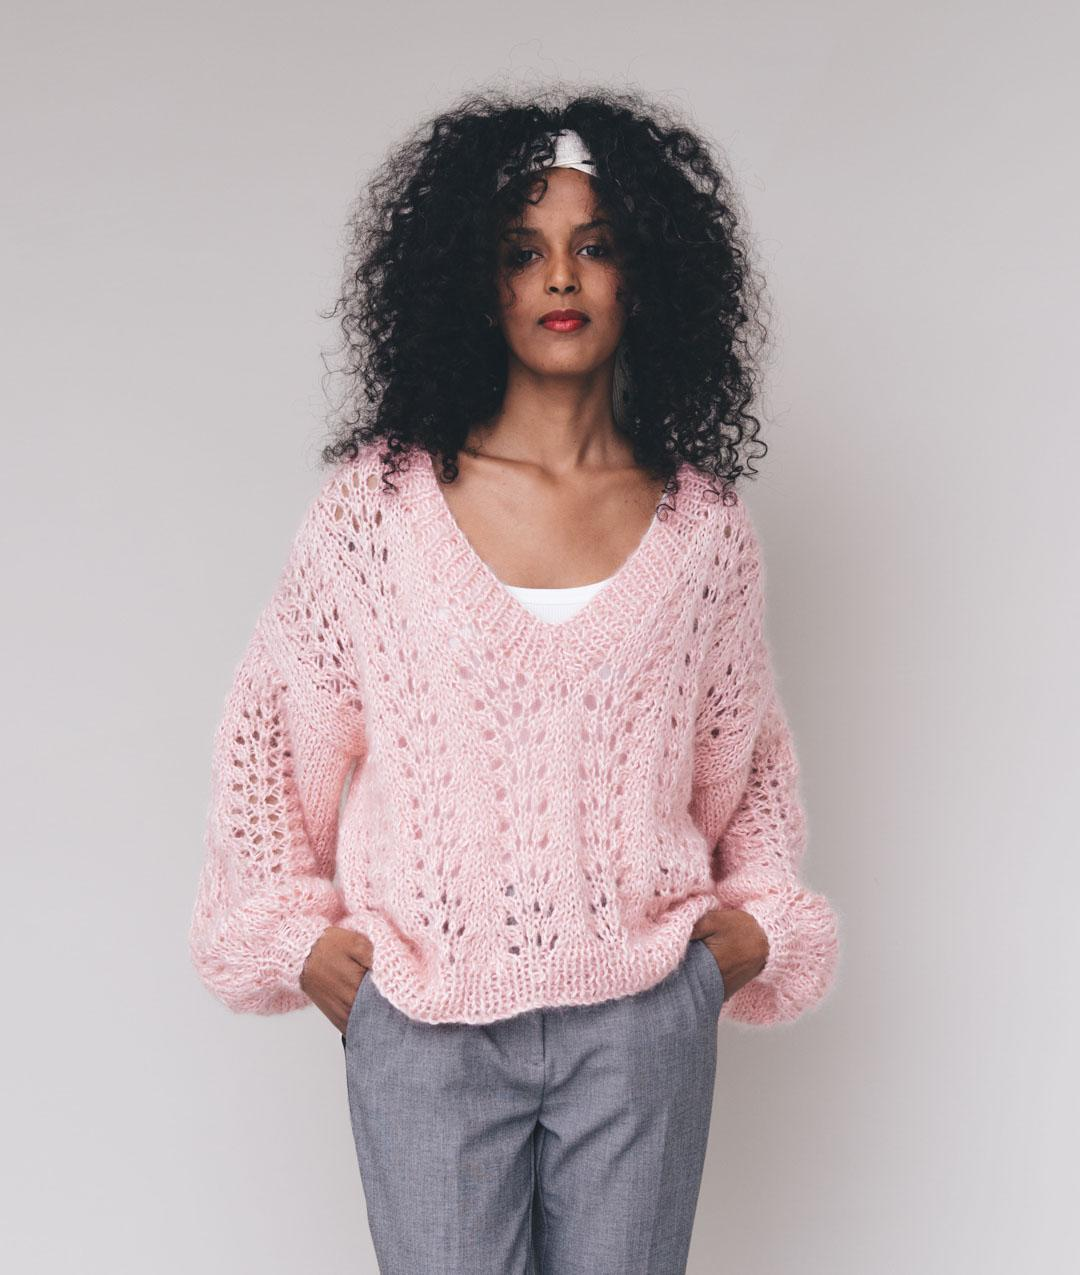 Peony Sweater Cotton Wool Knit Kit For Sweaters And Tops Online